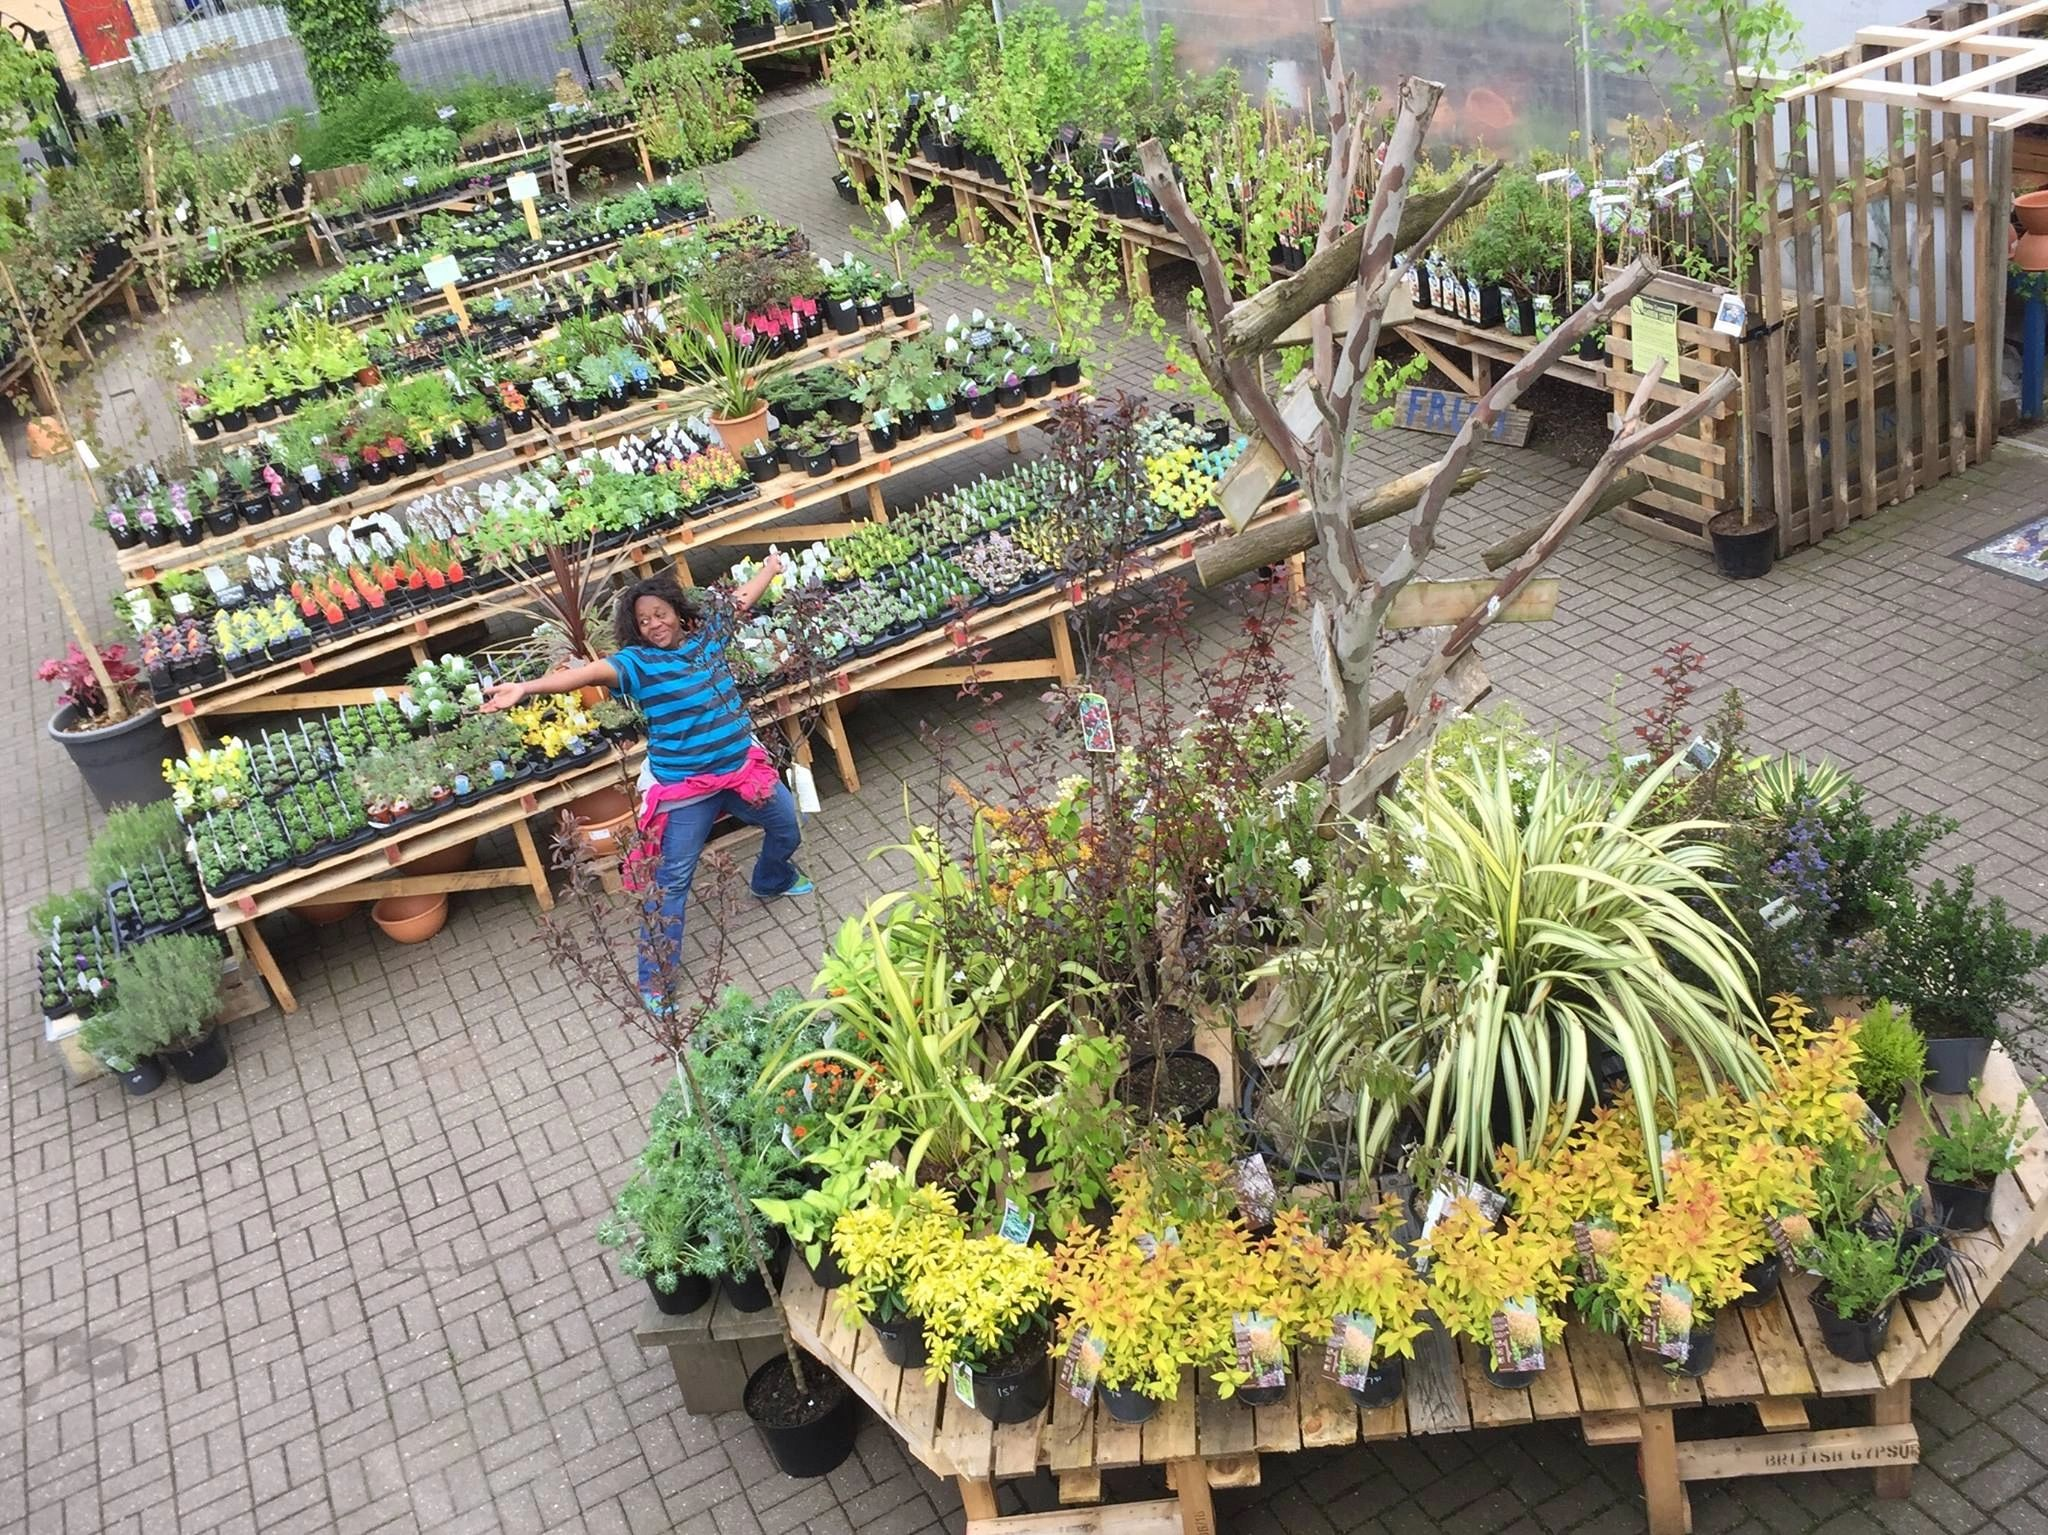 Education and training hulme community garden centre for Gardening classes near me